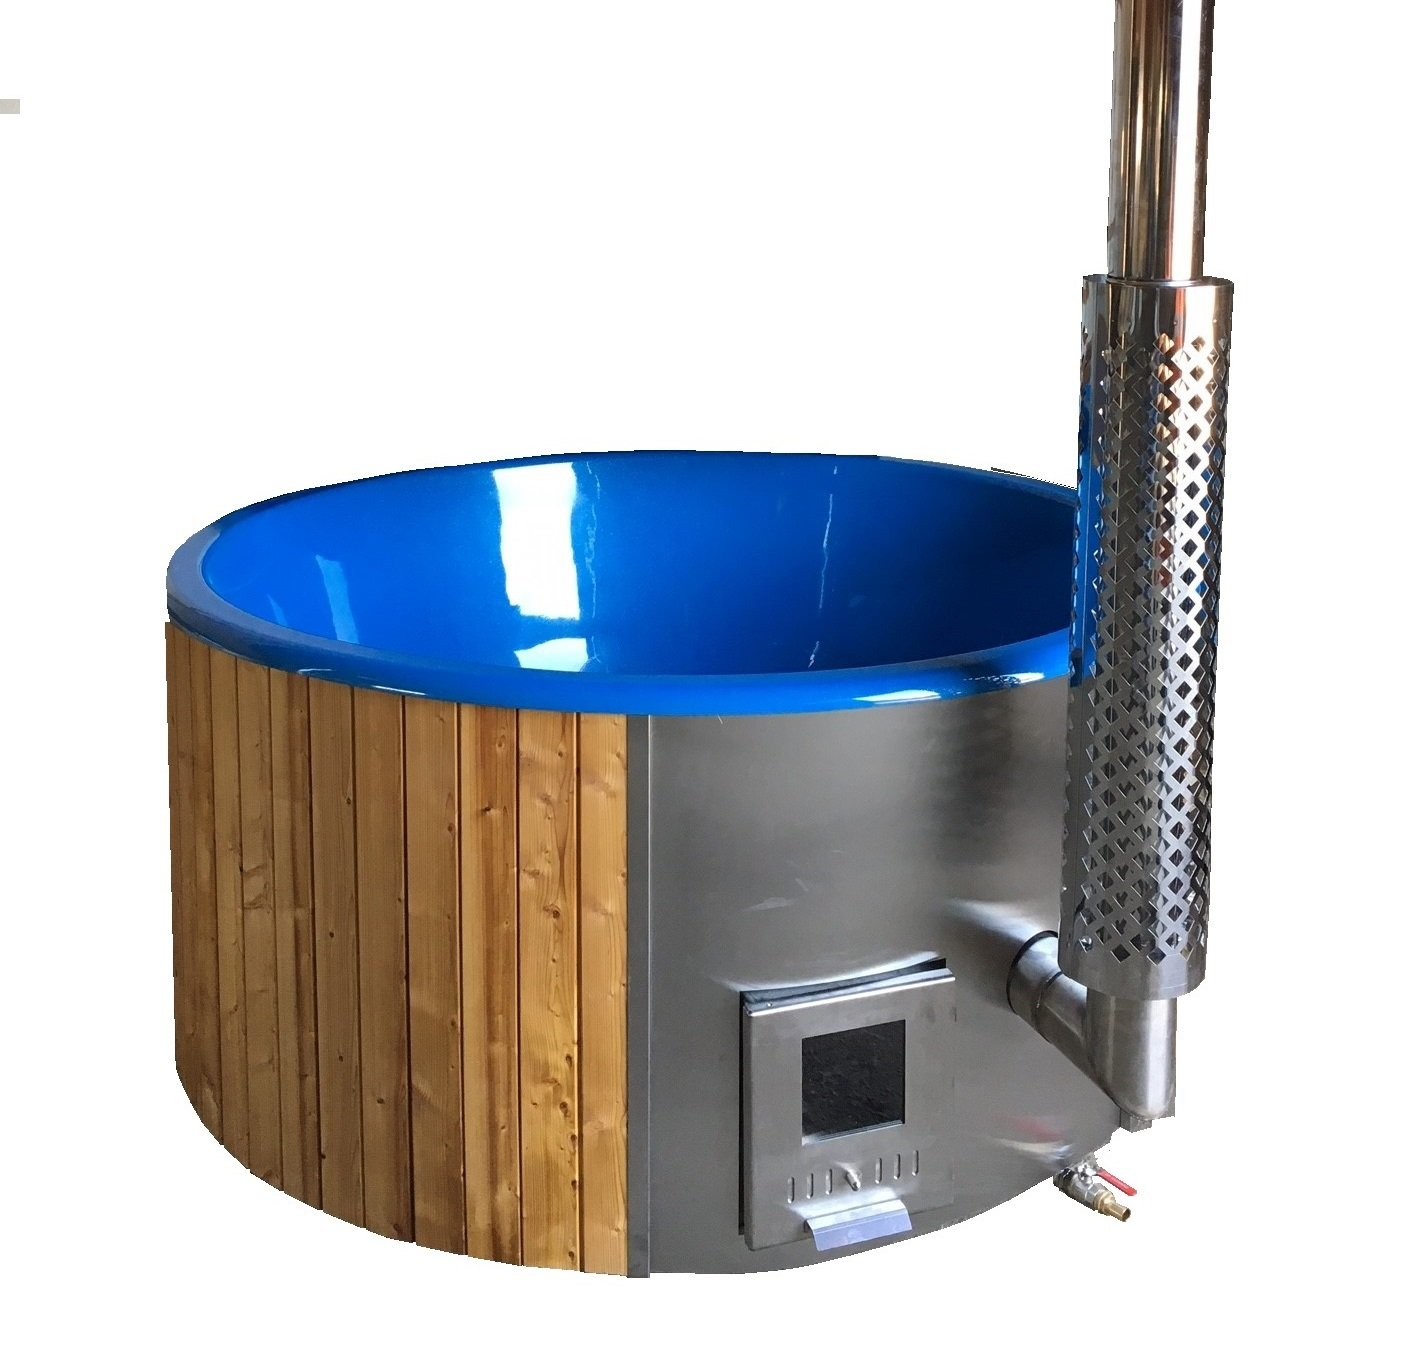 Amazon.com : Allwood Wood fired hot tub model #200 DeeLux ON SALE ...